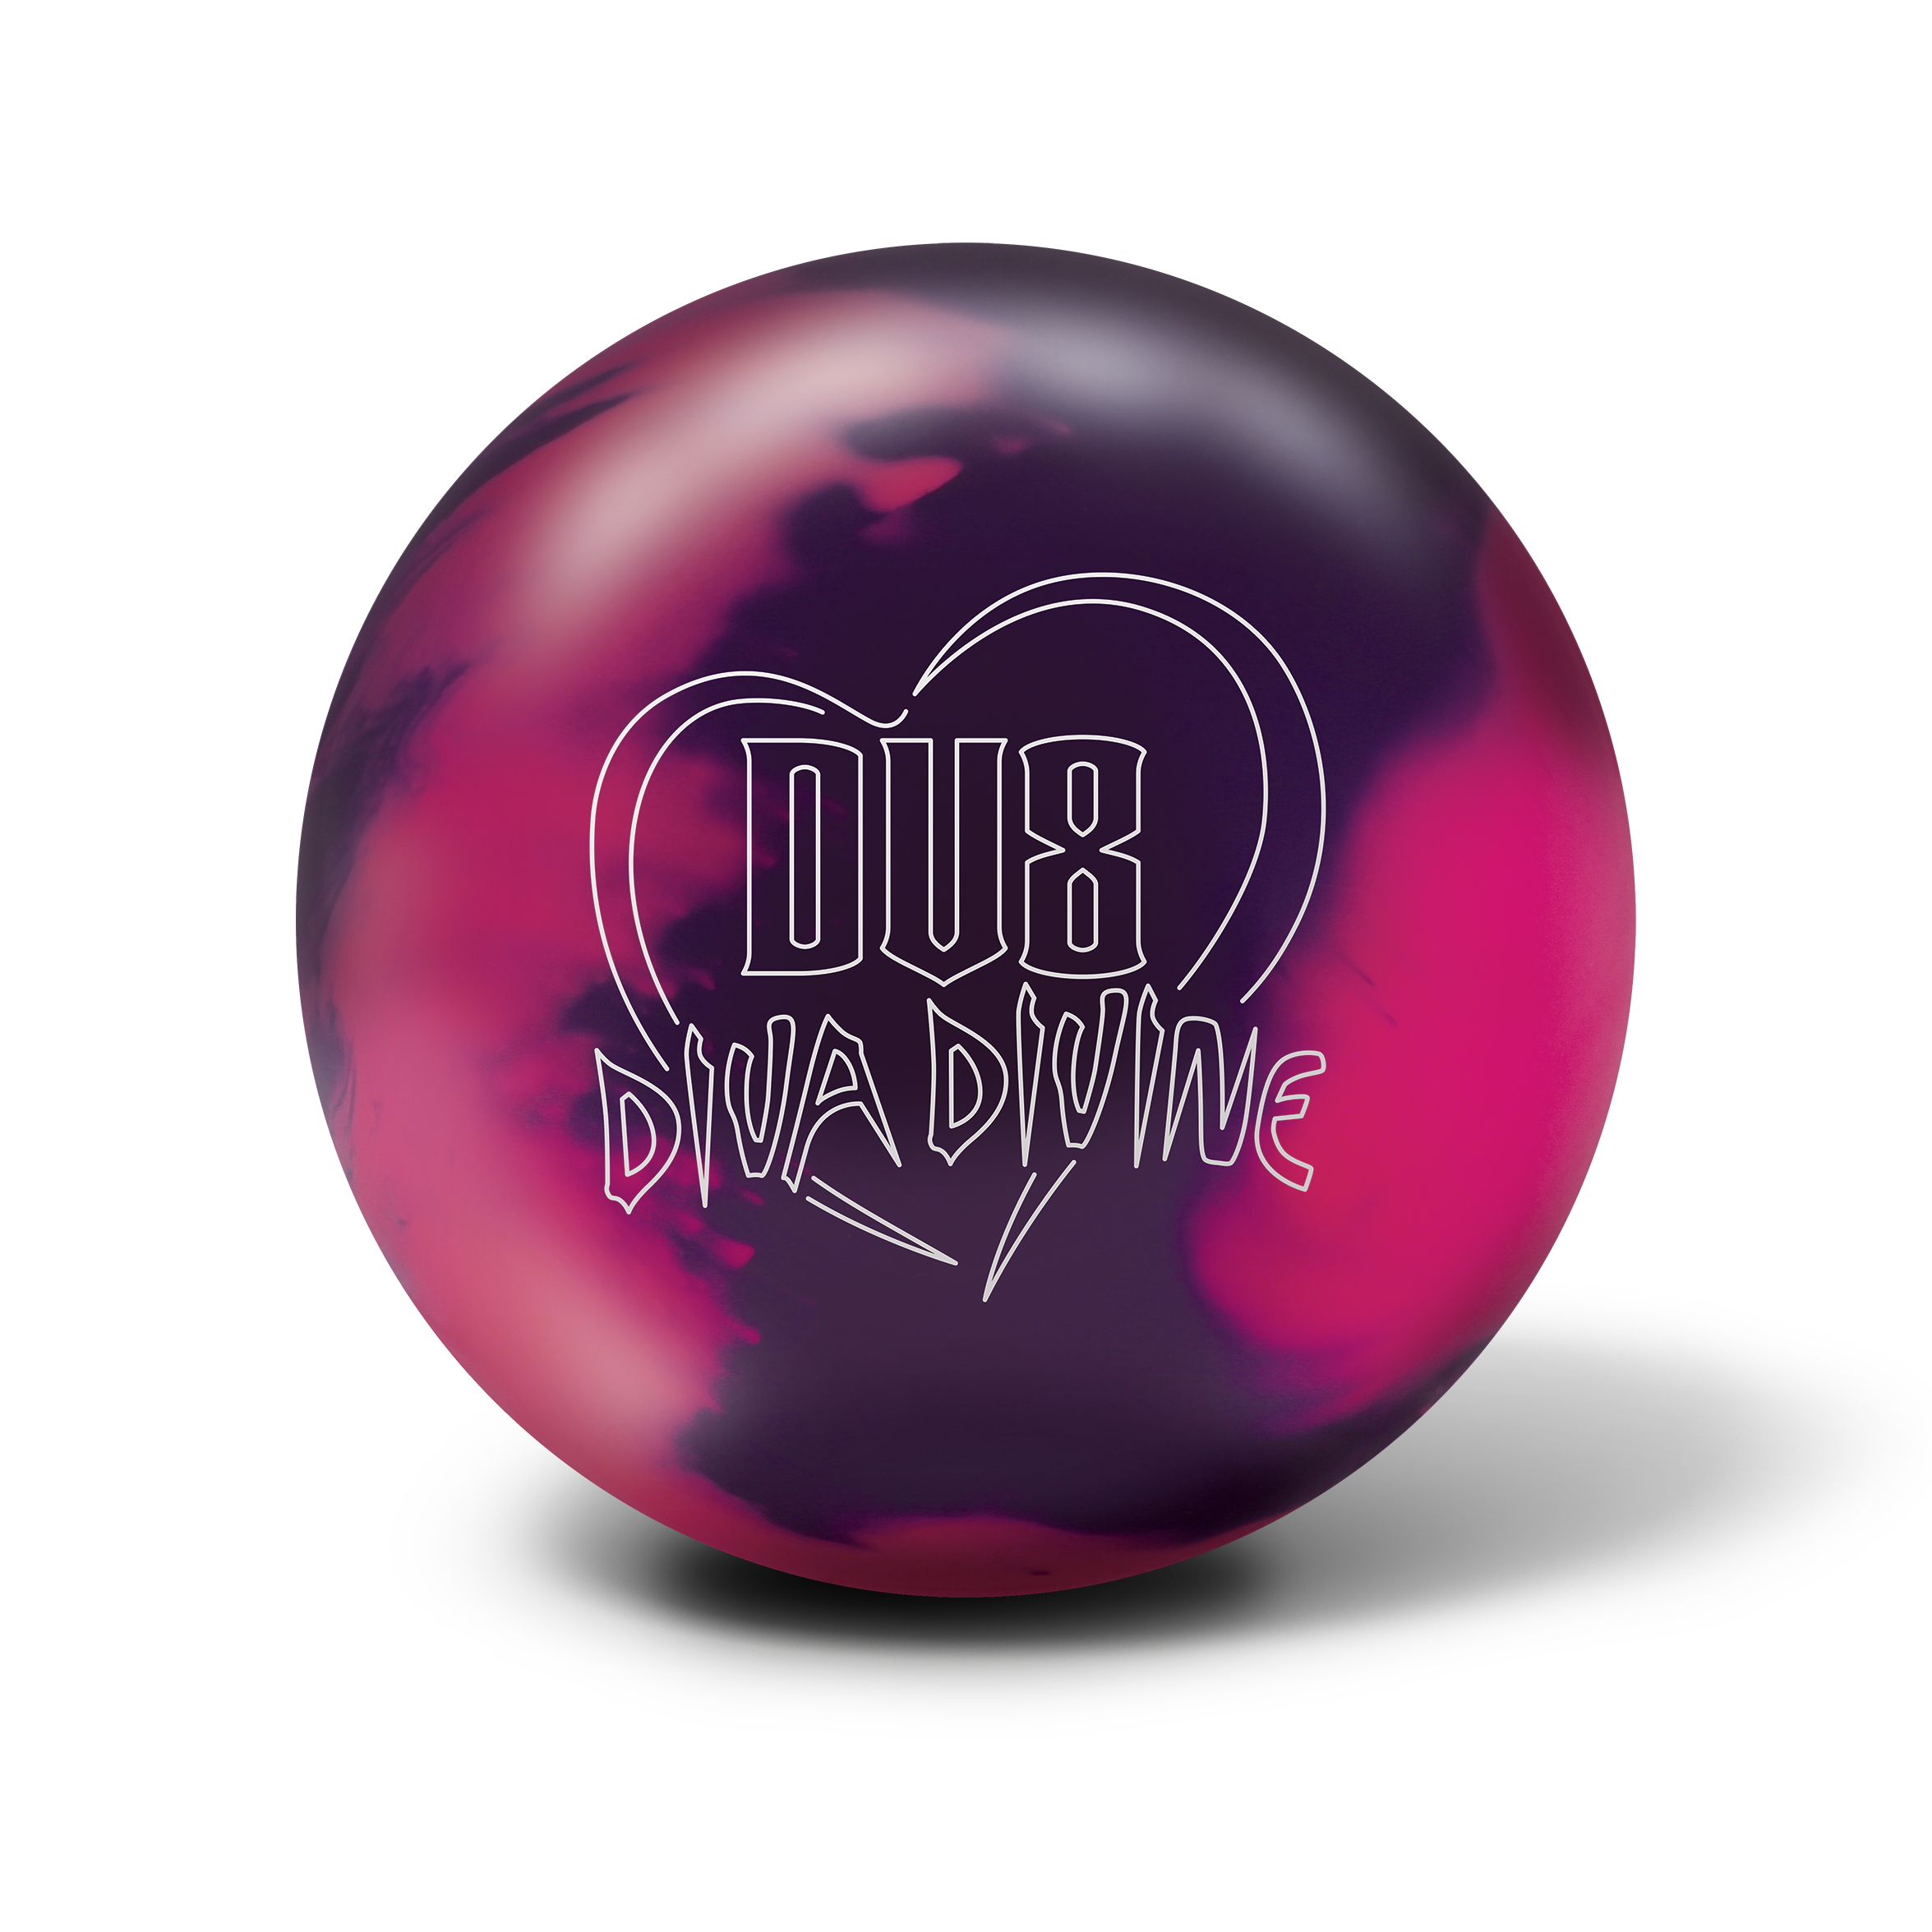 It Is All About The Diva New Diva Divine From Dv8 Has Great Looks And Great Performance Bowling Balls Bowling Ball Bowling